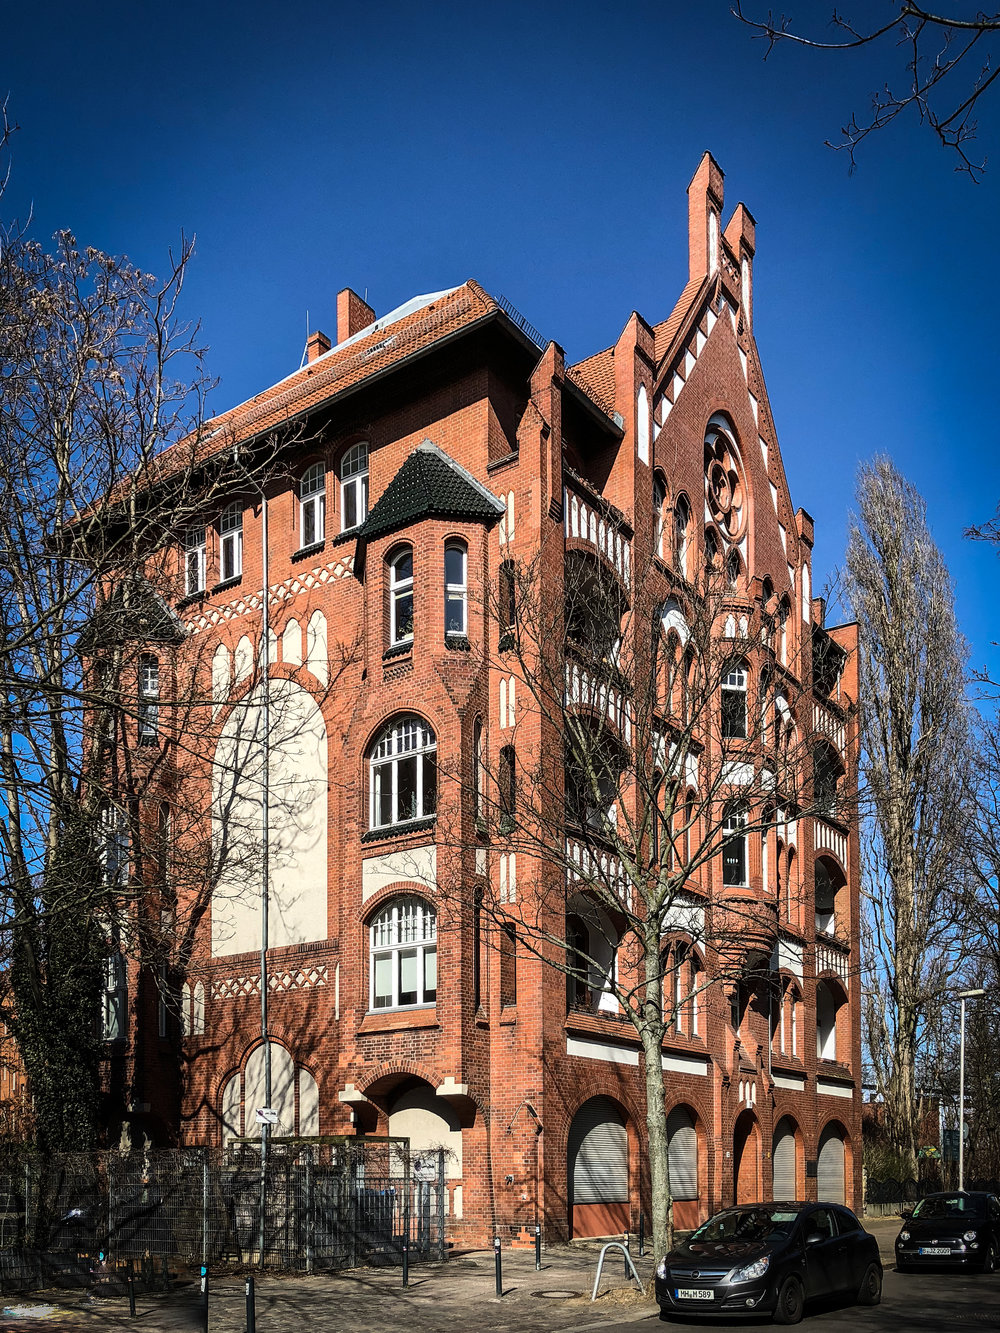 Apartment building in Friedrichshain